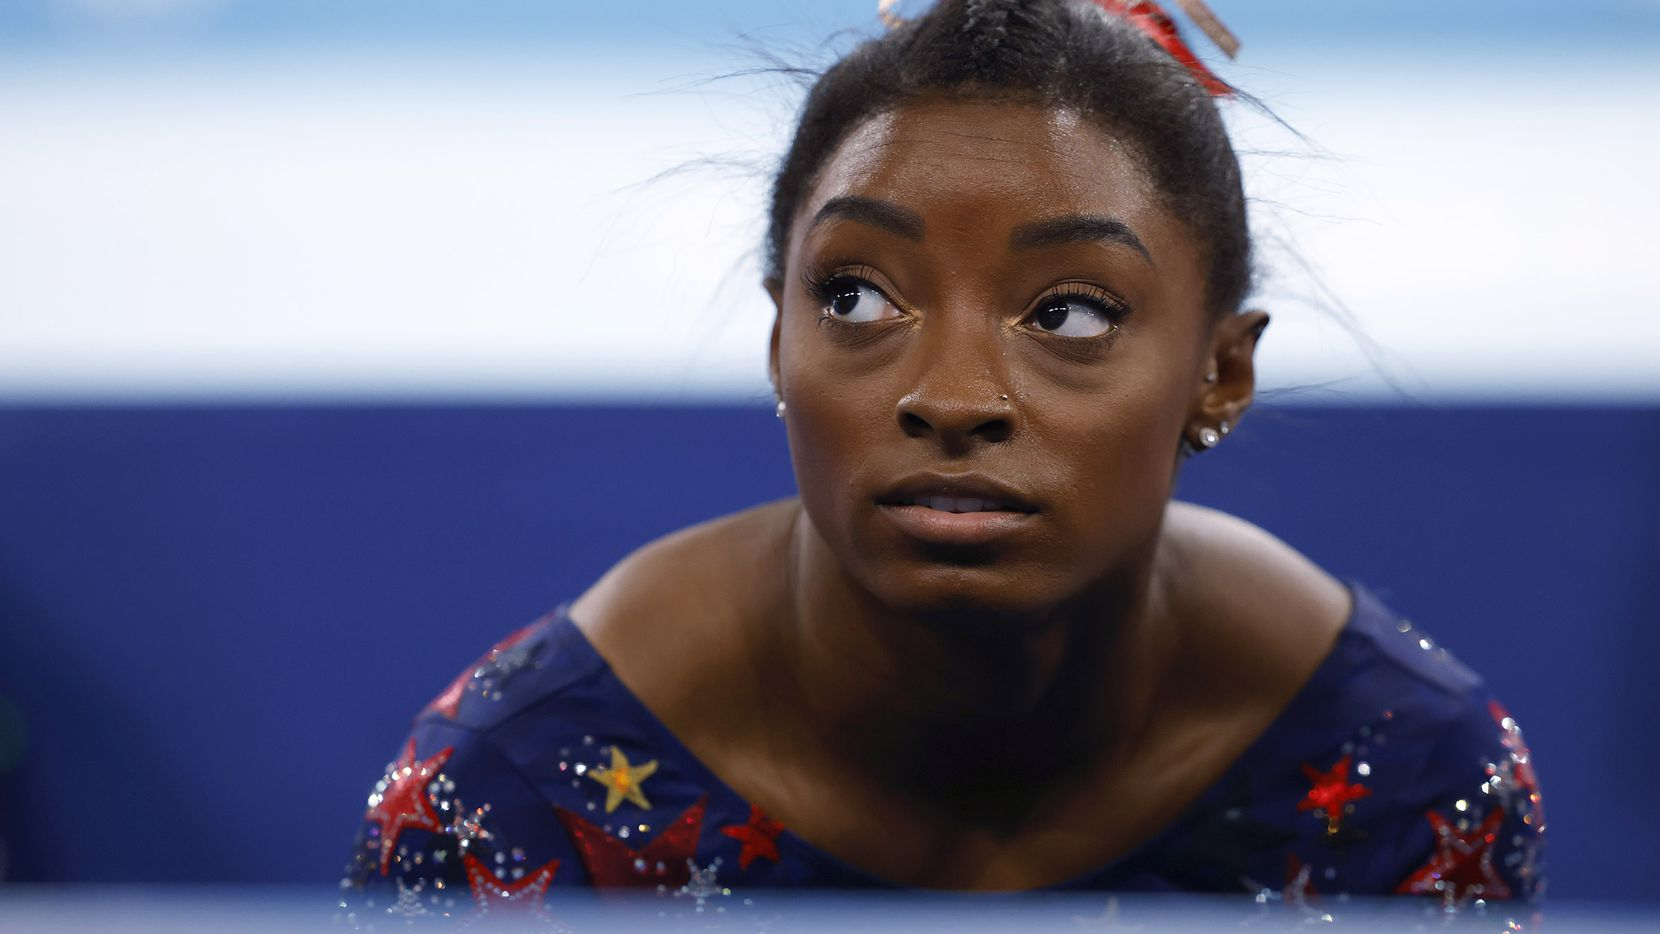 USA's Simone Biles after competing on the balance beam in a women's gymnastics event during the postponed 2020 Tokyo Olympics at Ariake Gymnastics Centre on Sunday, July 25, 2021, in Tokyo, Japan.